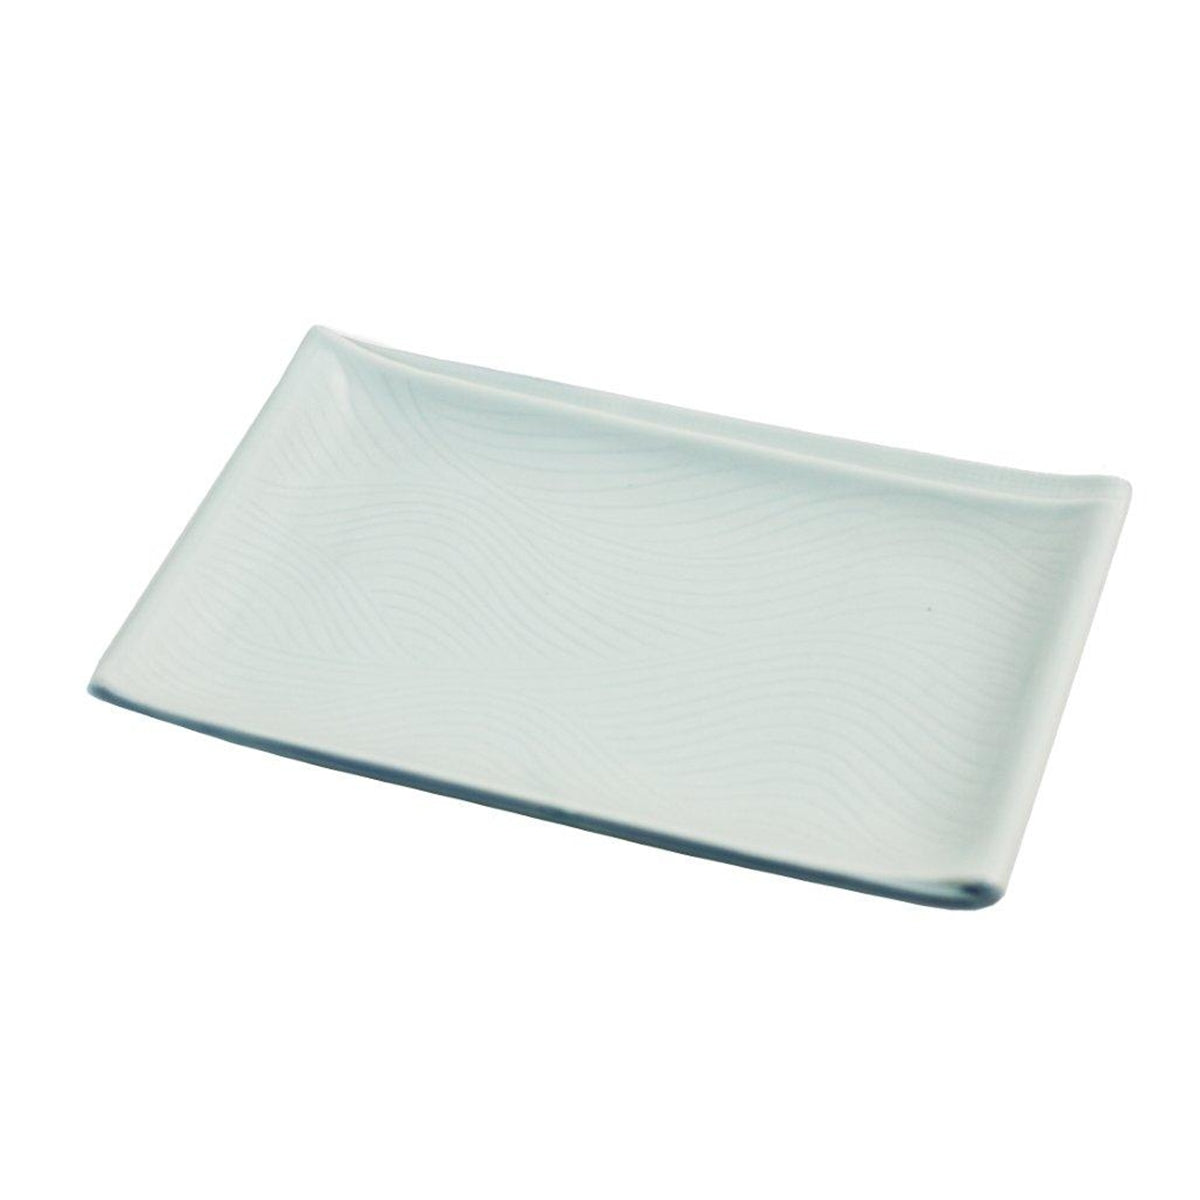 "Light Sage Rectangular Plate 8.07"" x 5.16"""